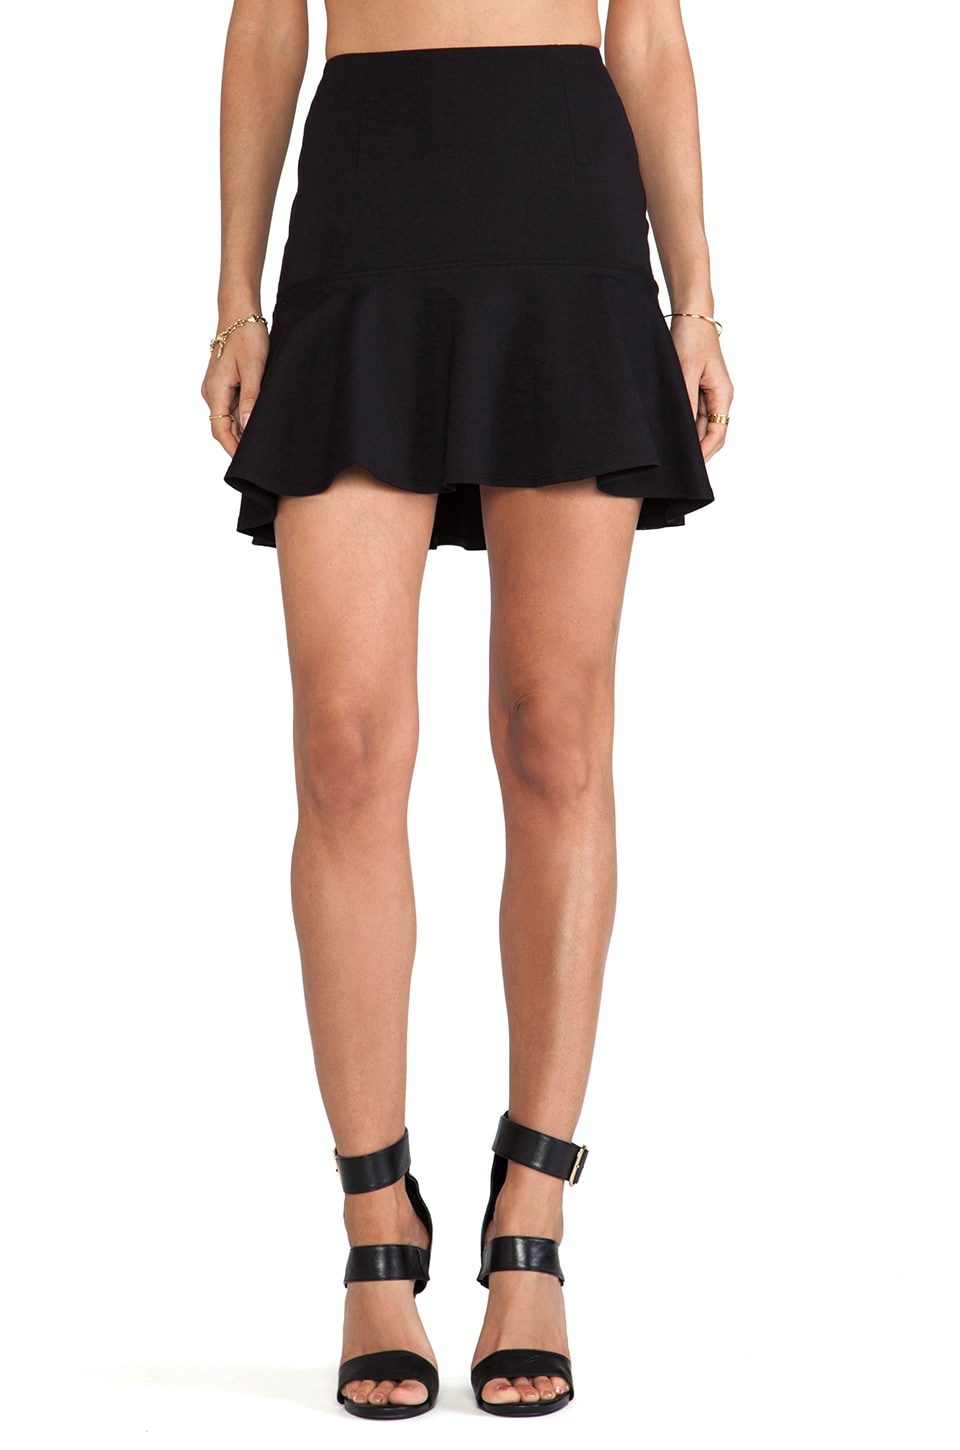 David Lerner Flounced Skirt in Black